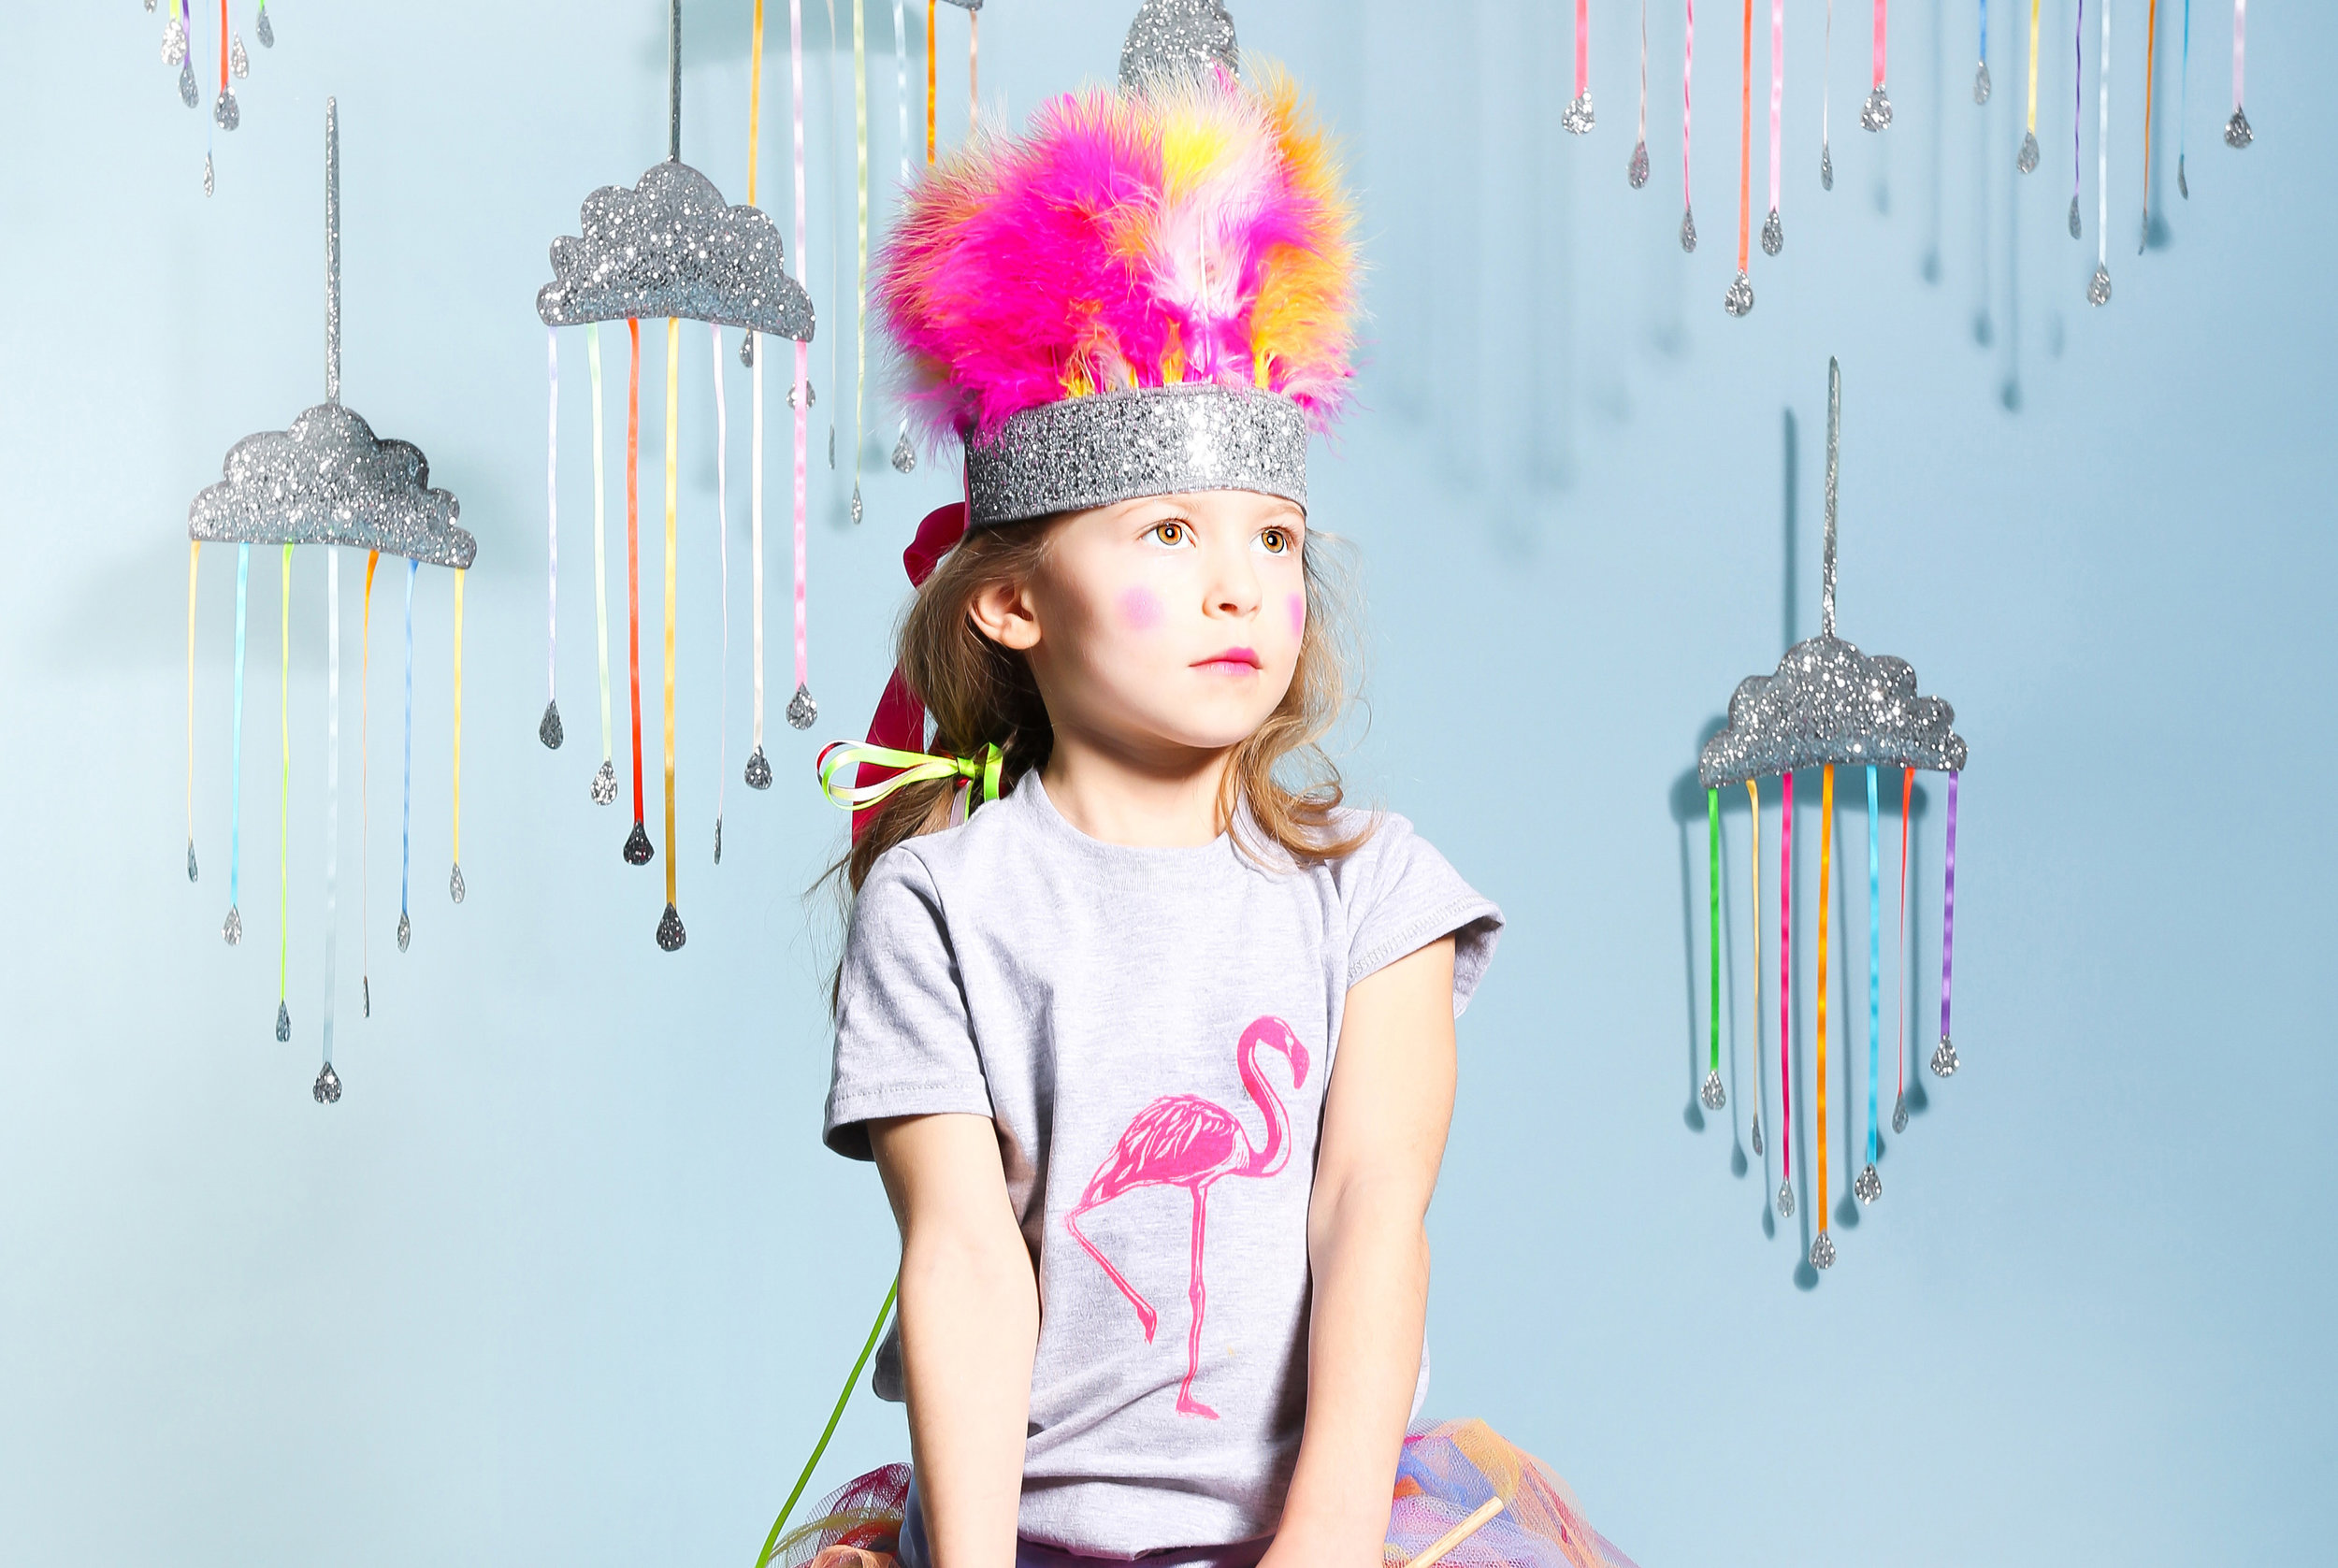 5. SPARKLECHILD, Cloud Mobile. 10% OFF code in The Mamahood Marketplace